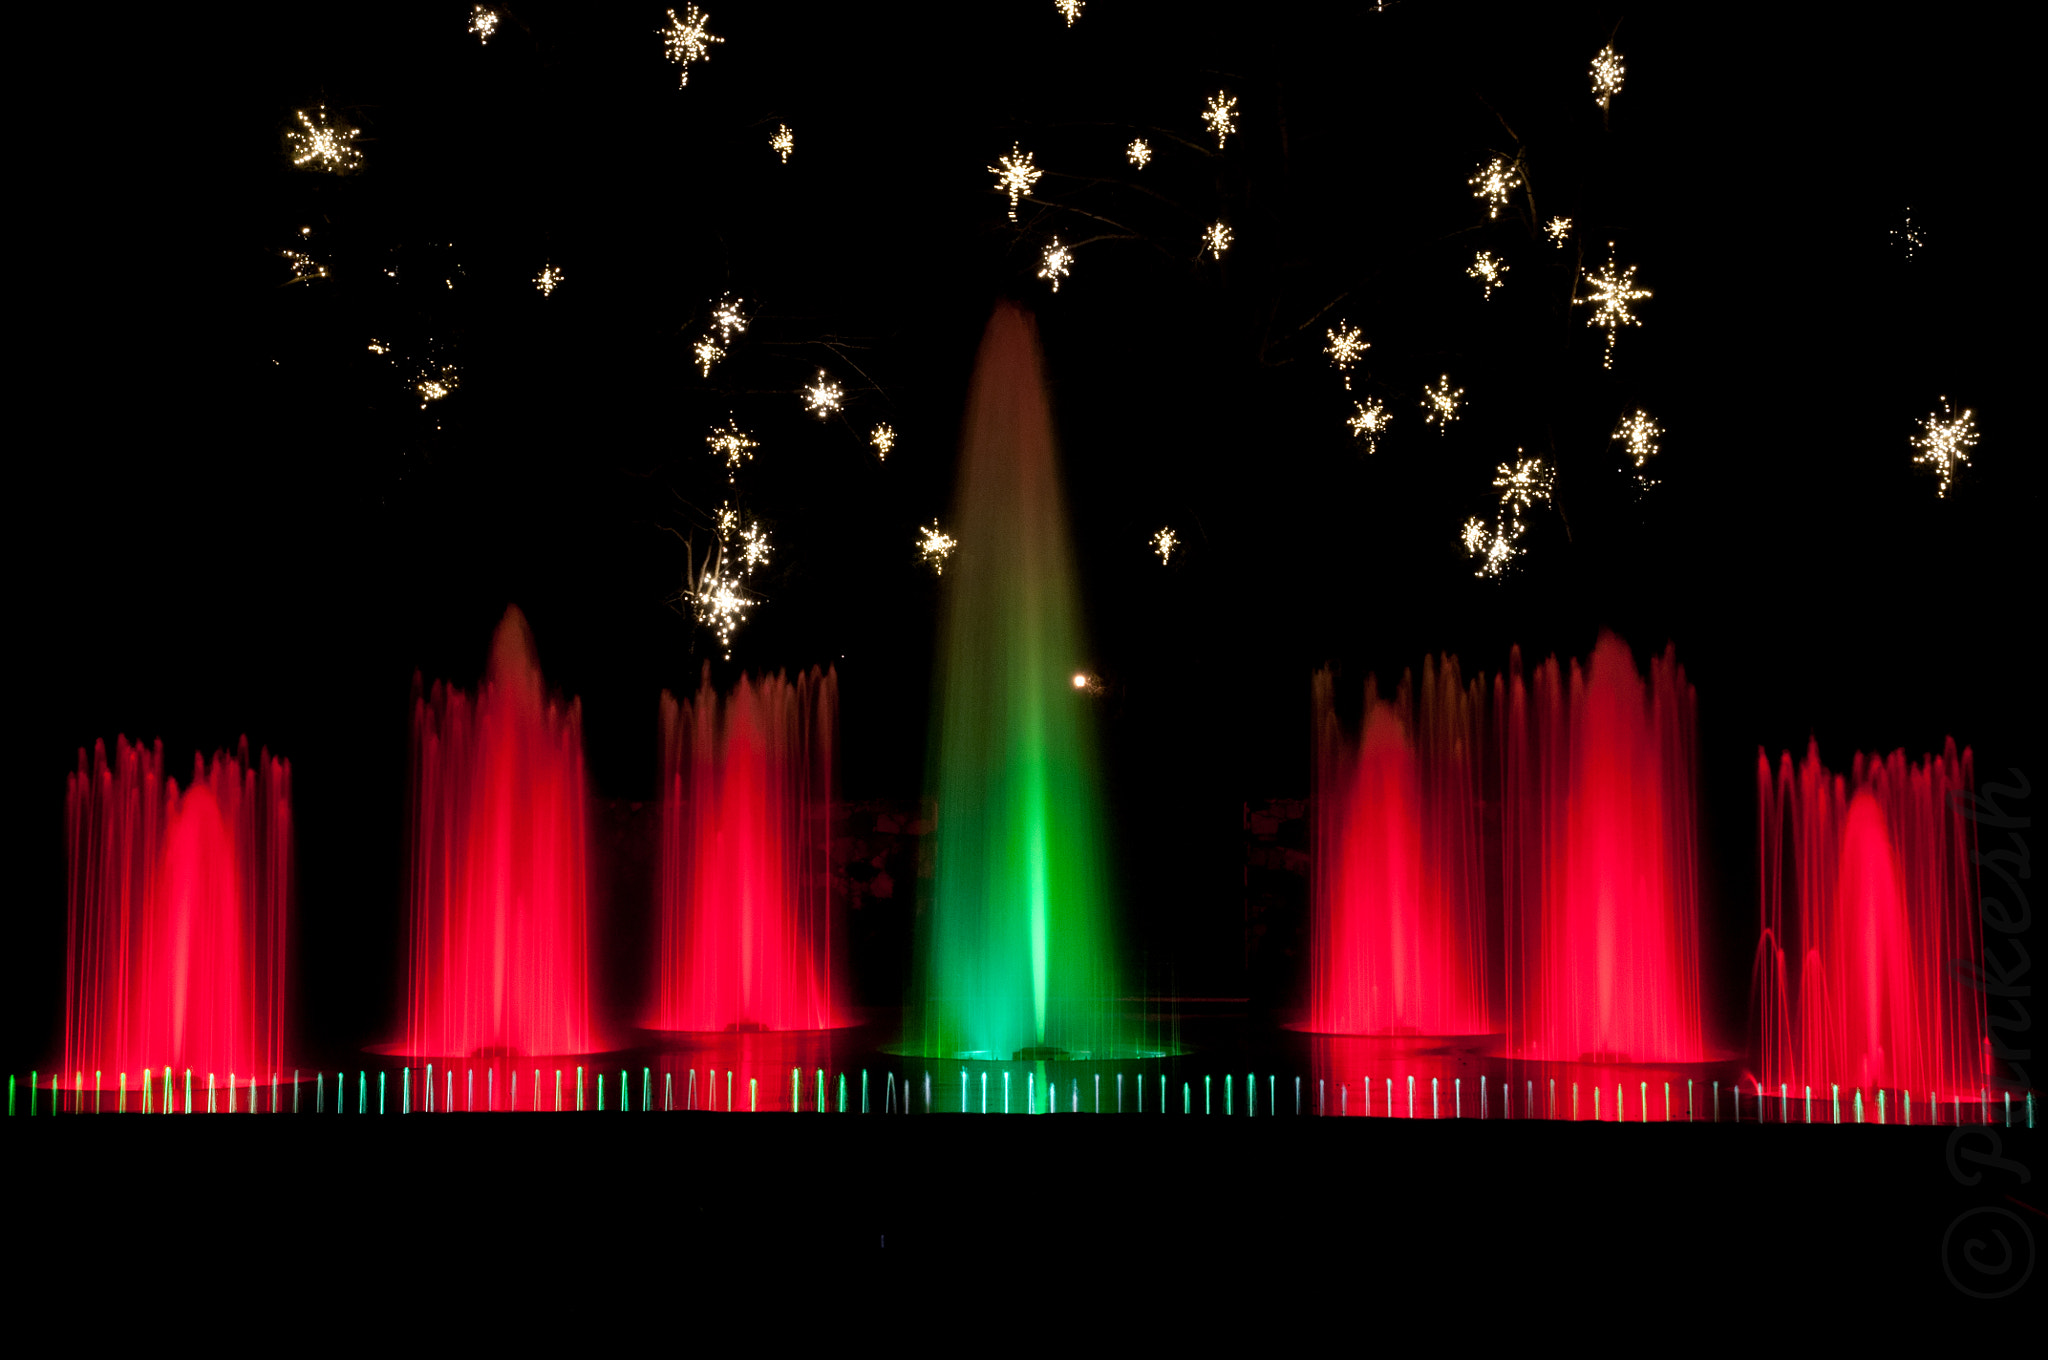 Photograph Colorful Fountains 3 by Pankesh Contractor on 500px